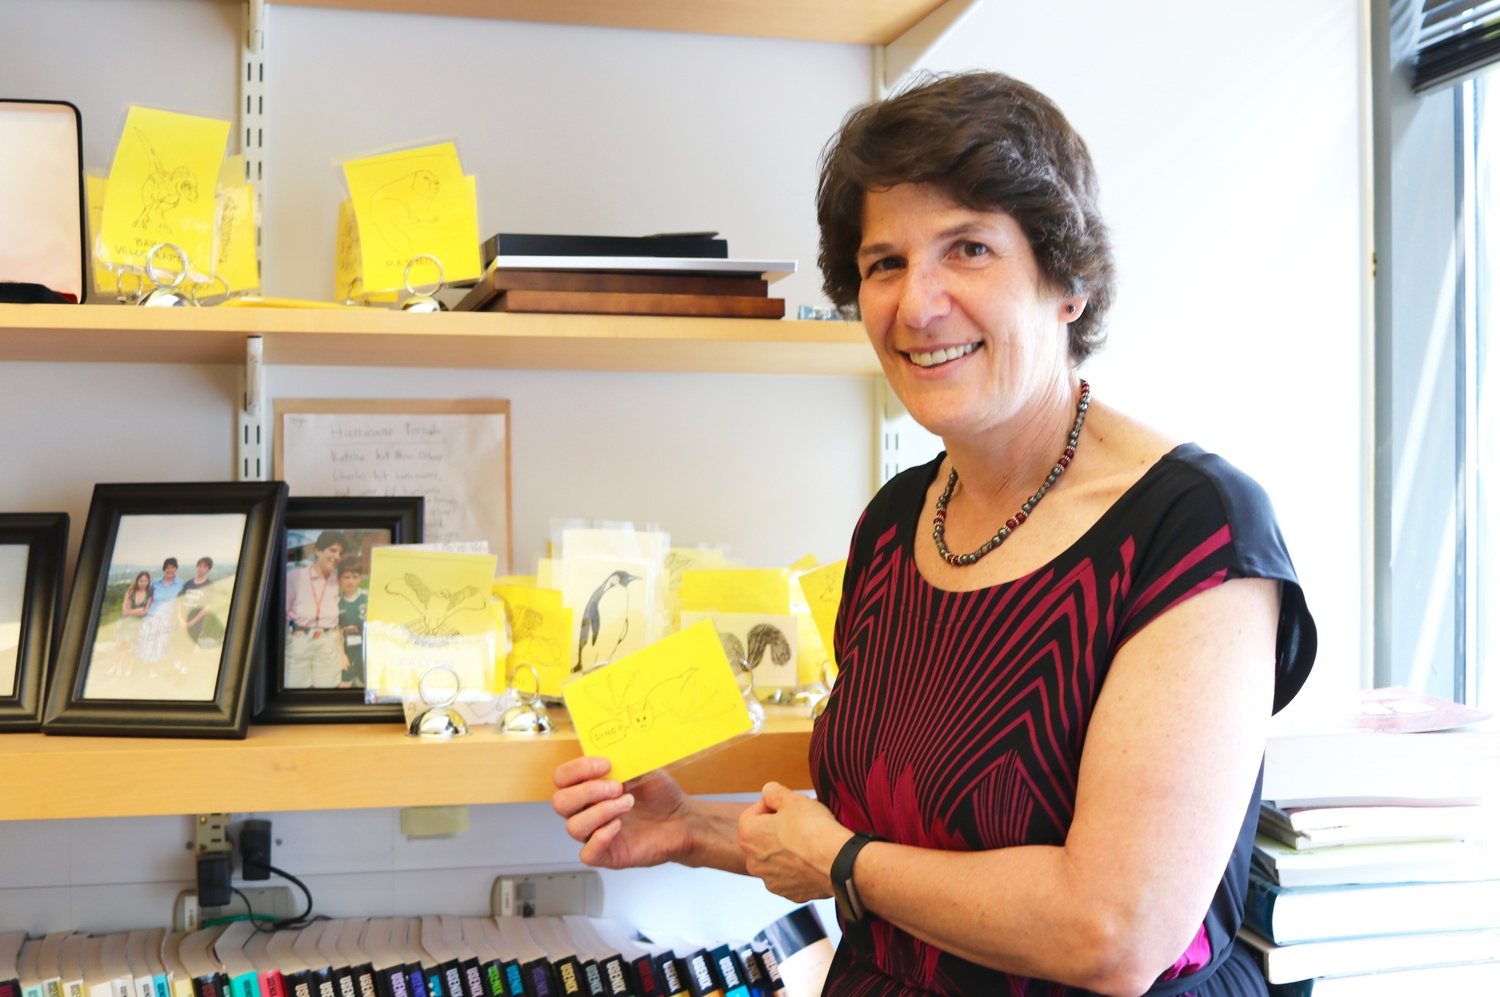 Margo I. Seltzer '83 poses with her computer science teaching tools in her office.